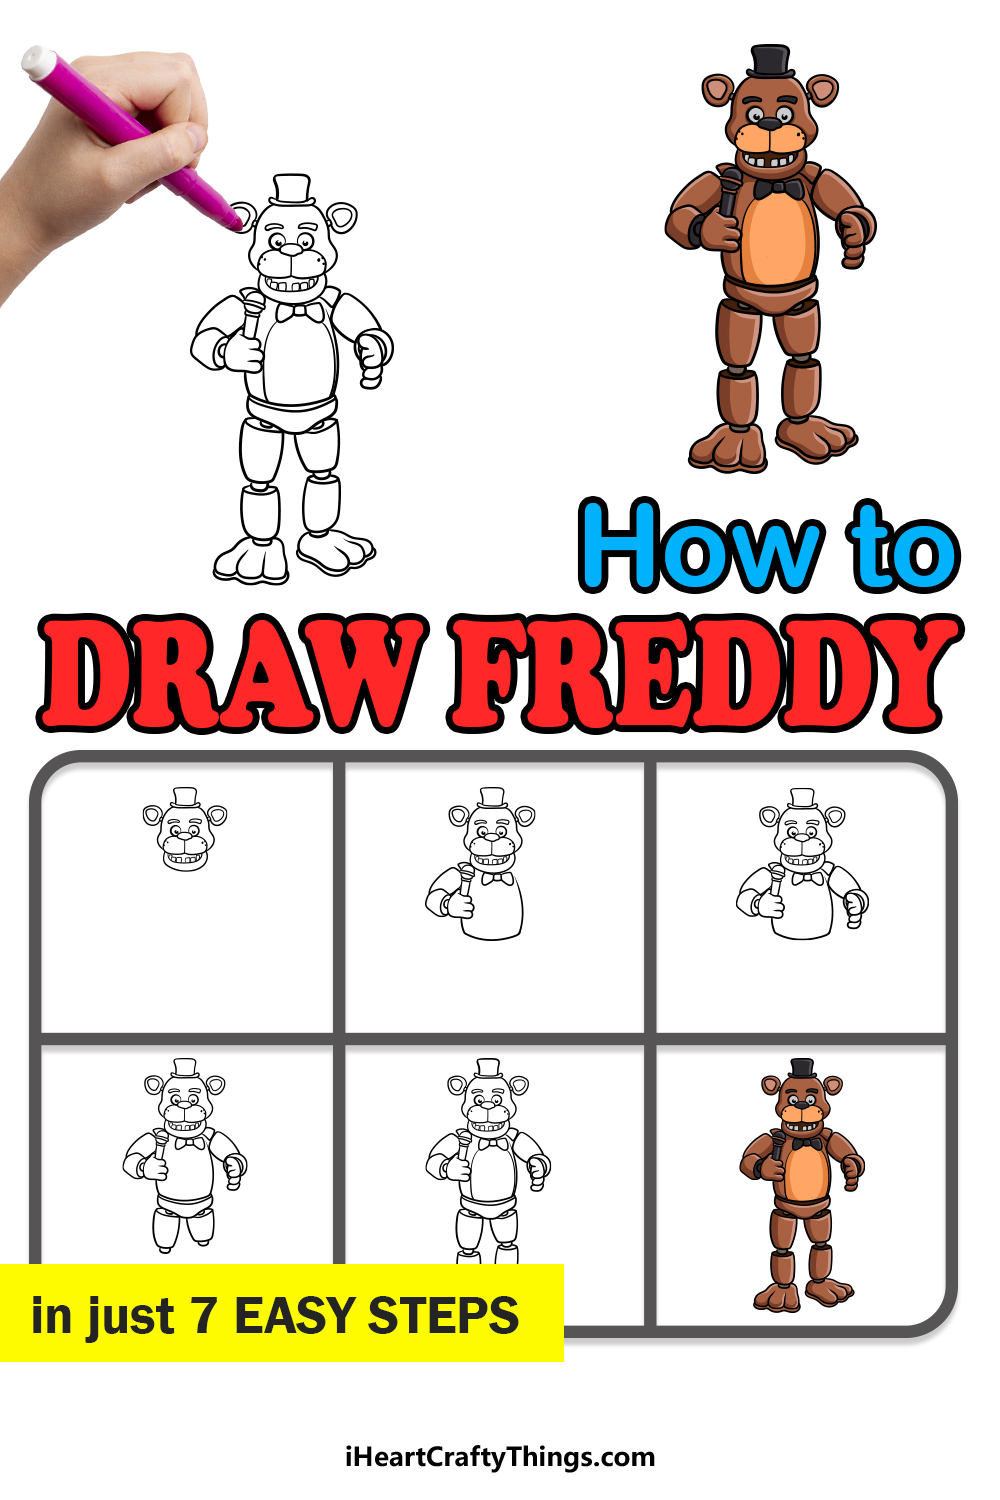 how to draw freddy in 7 easy steps